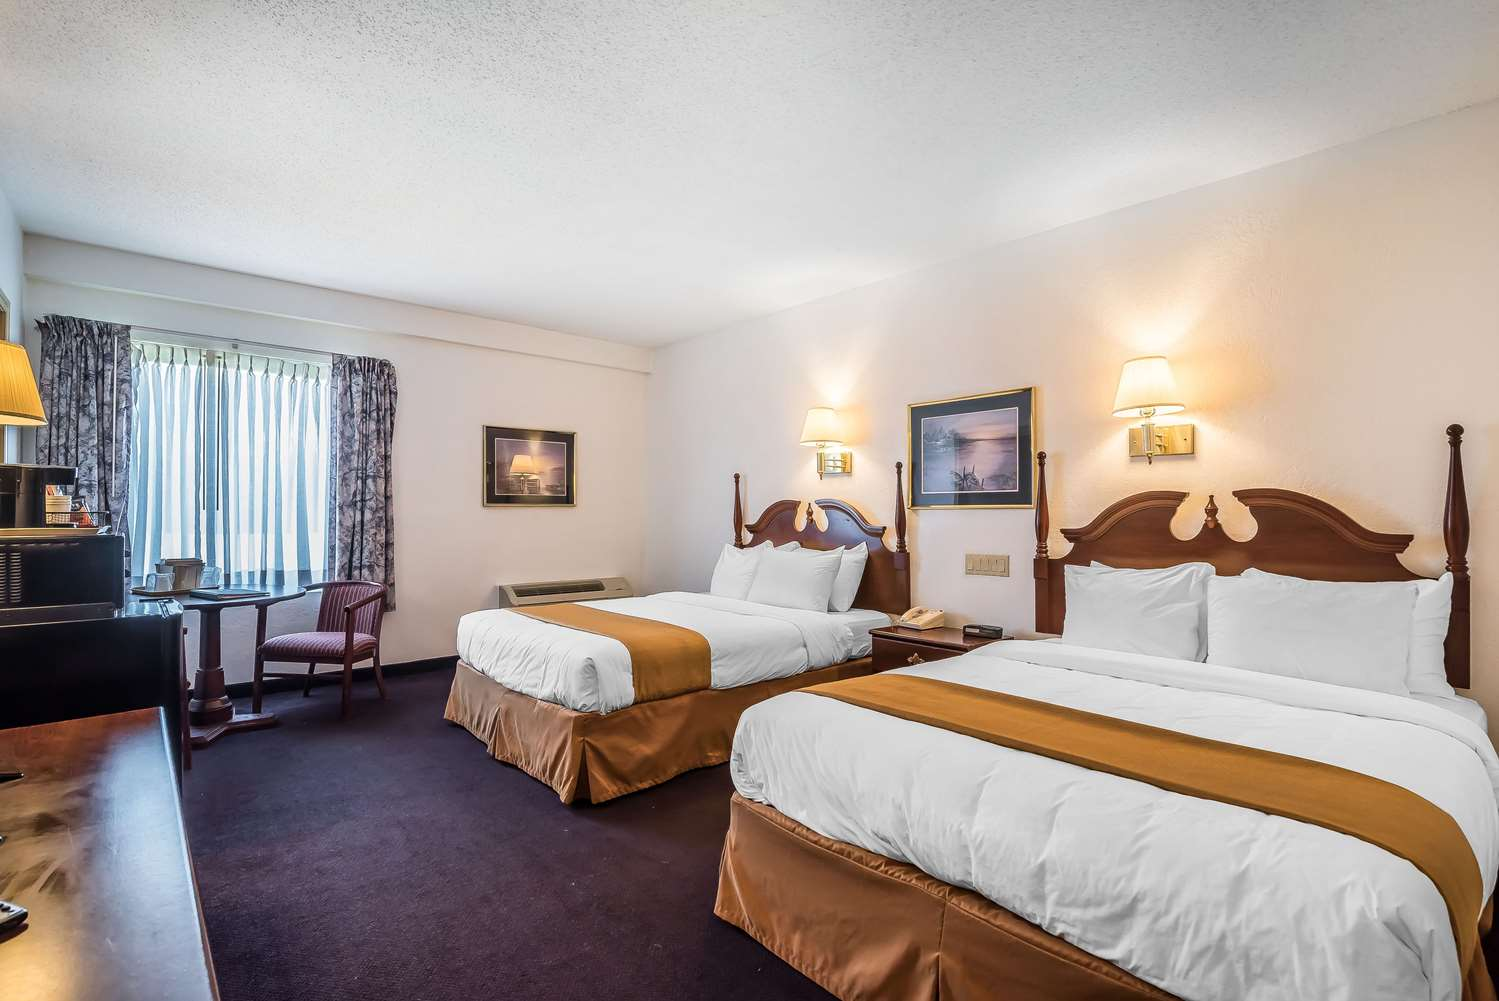 Room - Quality Inn & Suites Albany Airport Latham